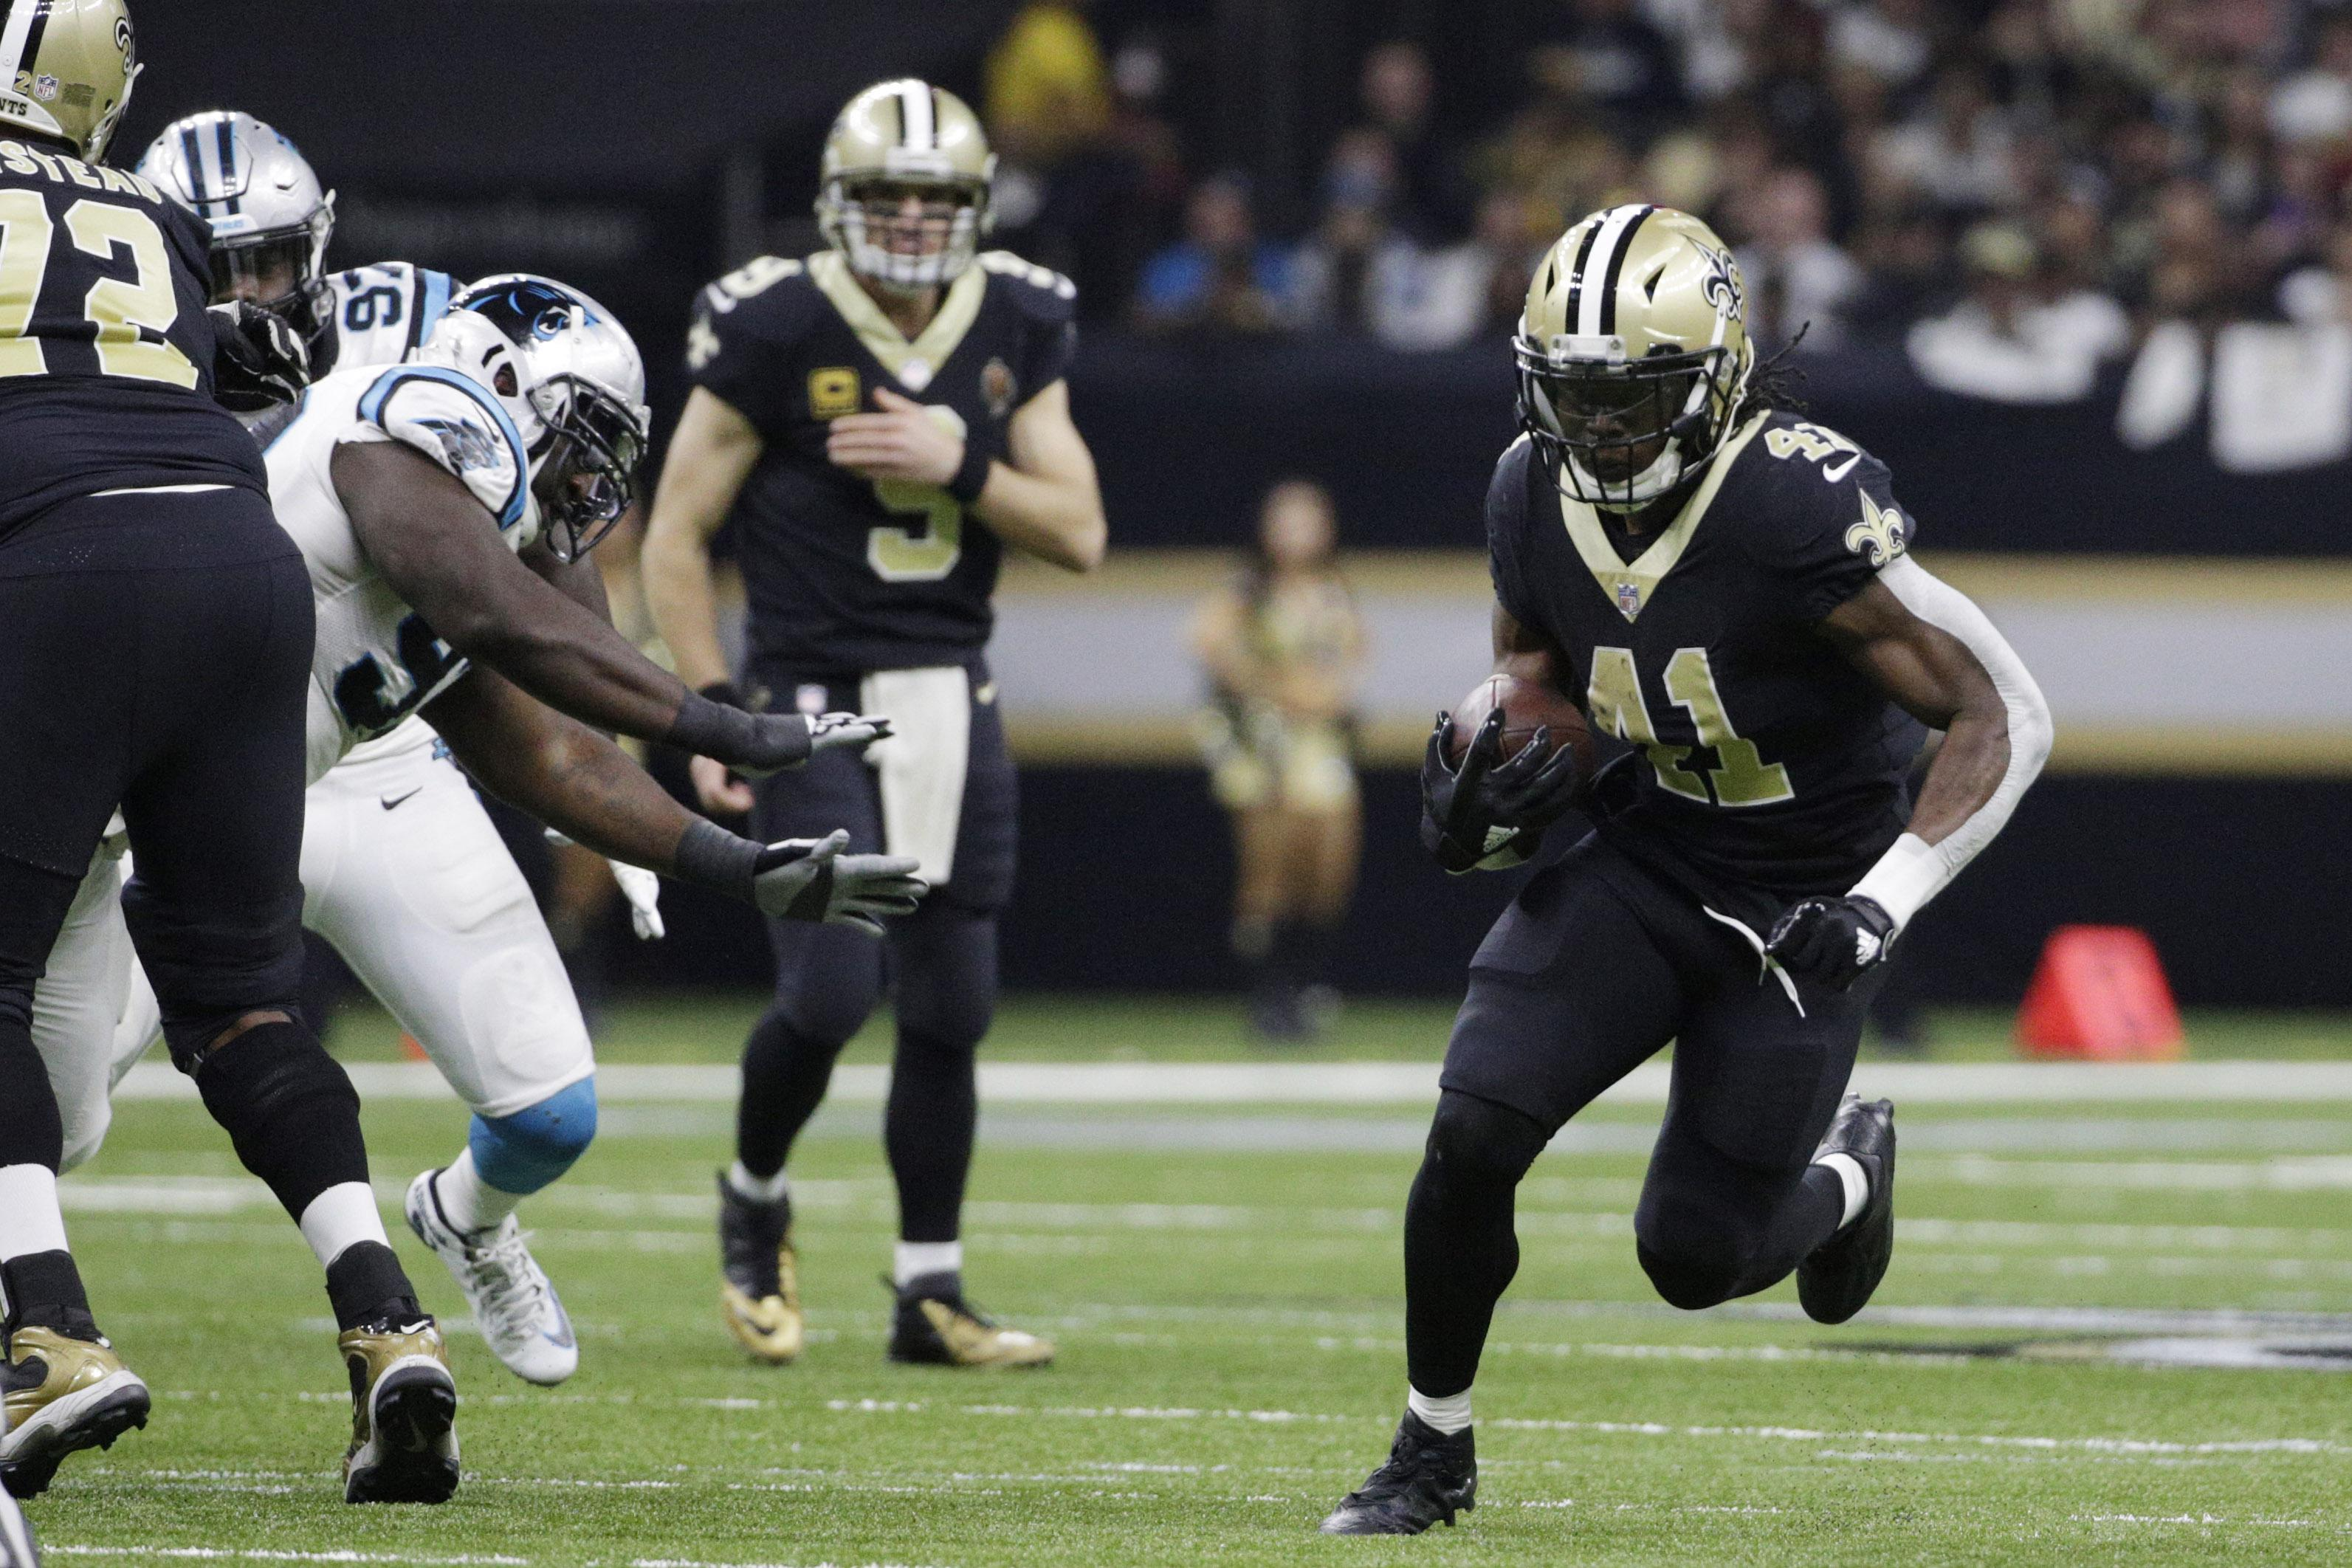 Alvin Kamara in action for the New Orleans Saints in their win over the Carolina Panthers